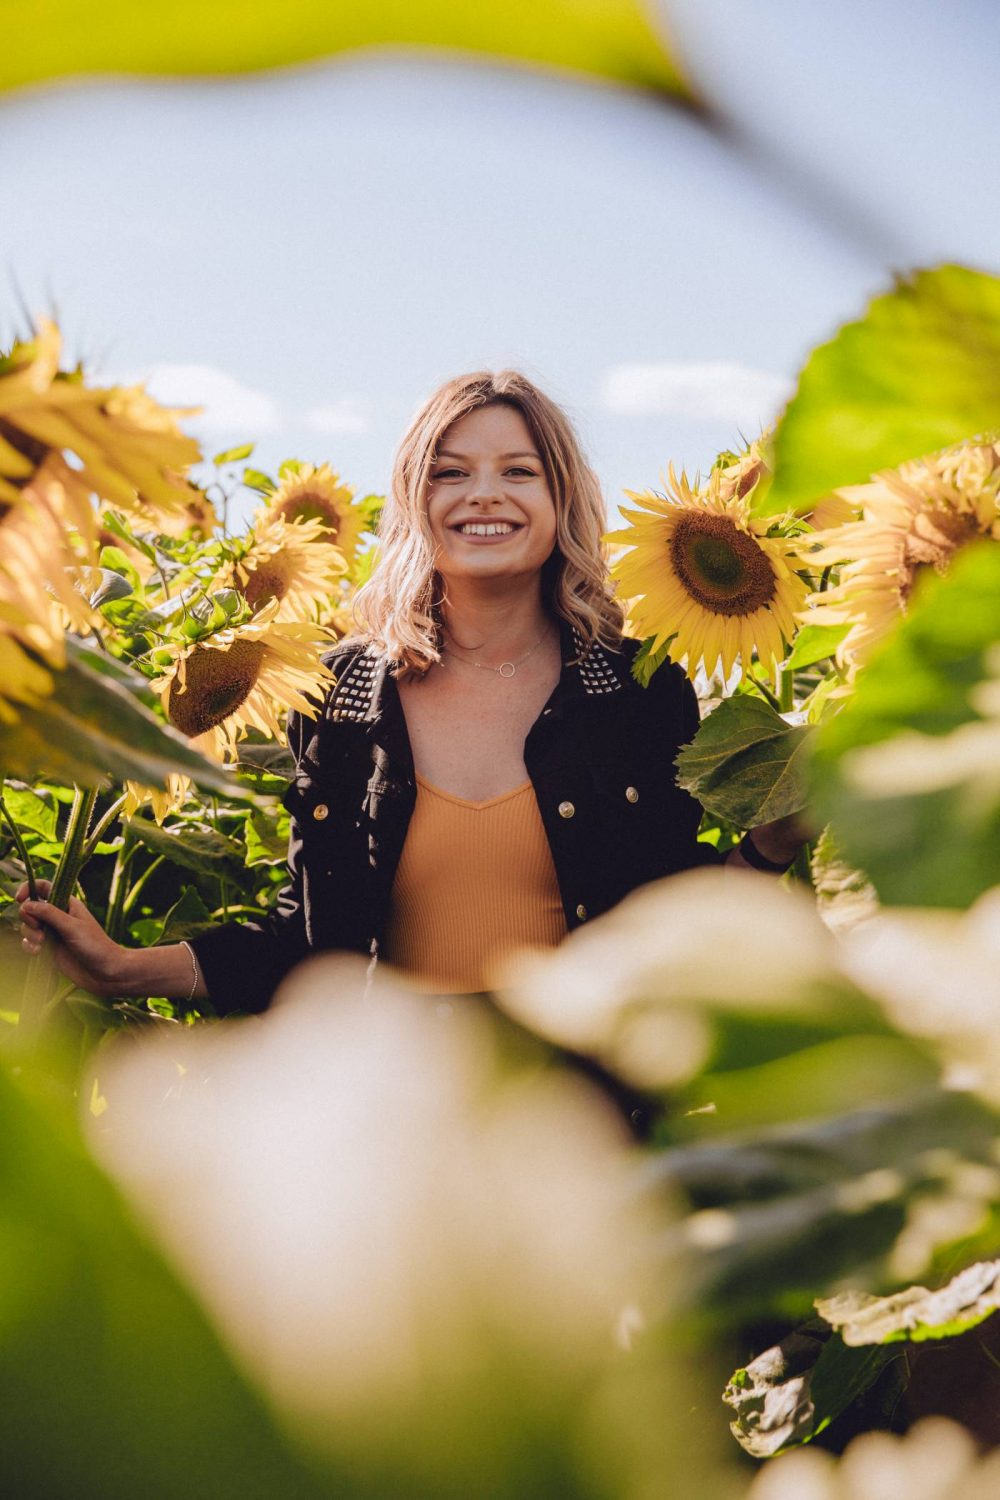 Sophie etc in a field of sunflowers